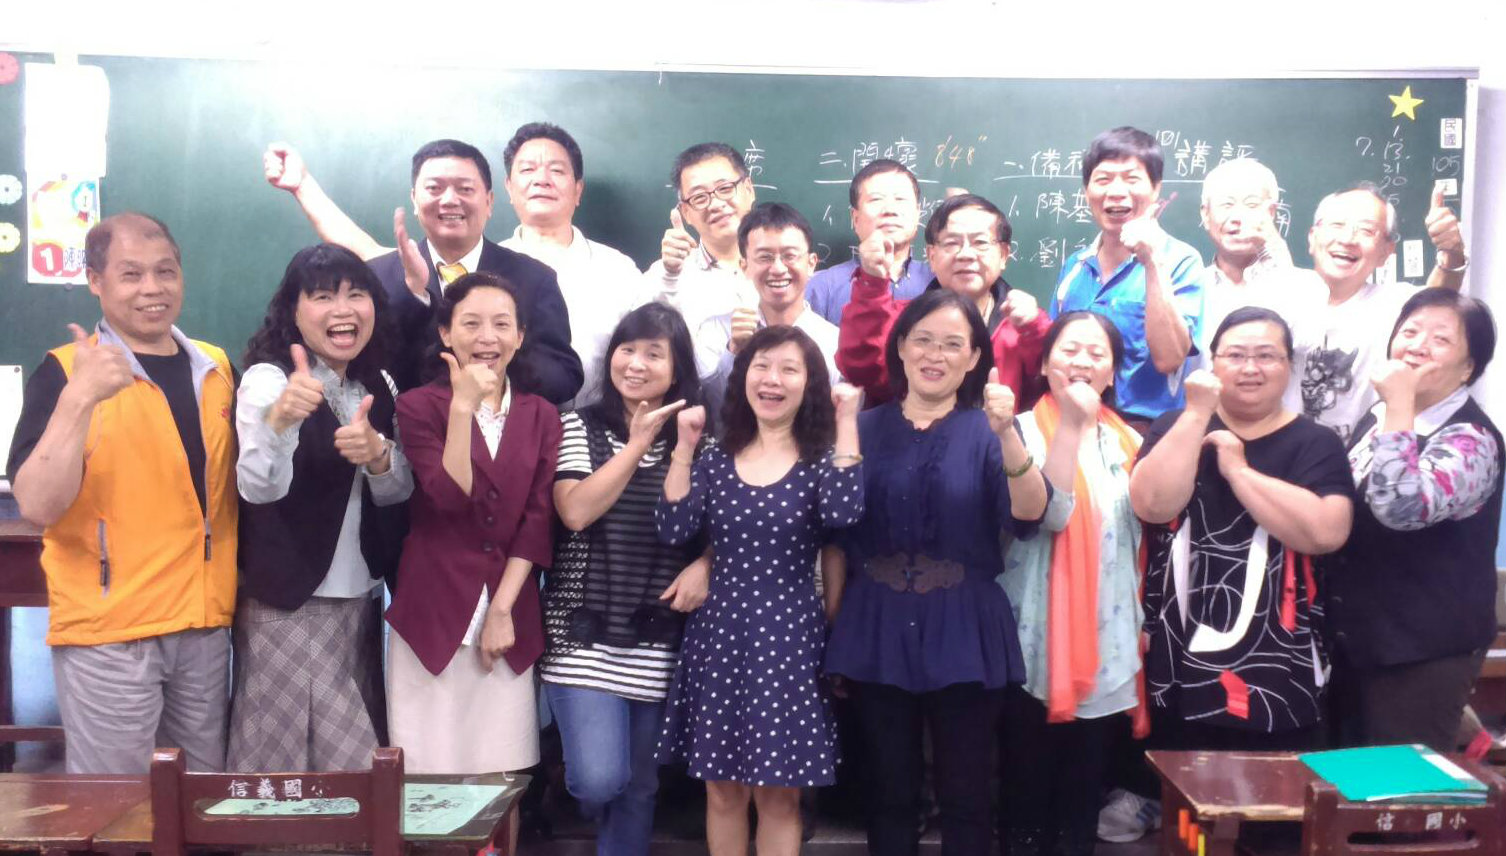 The Keelung Taiwanese Toastmasters Club (Image: Courtesy of Keelung Taiwanese Toastmasters Club)